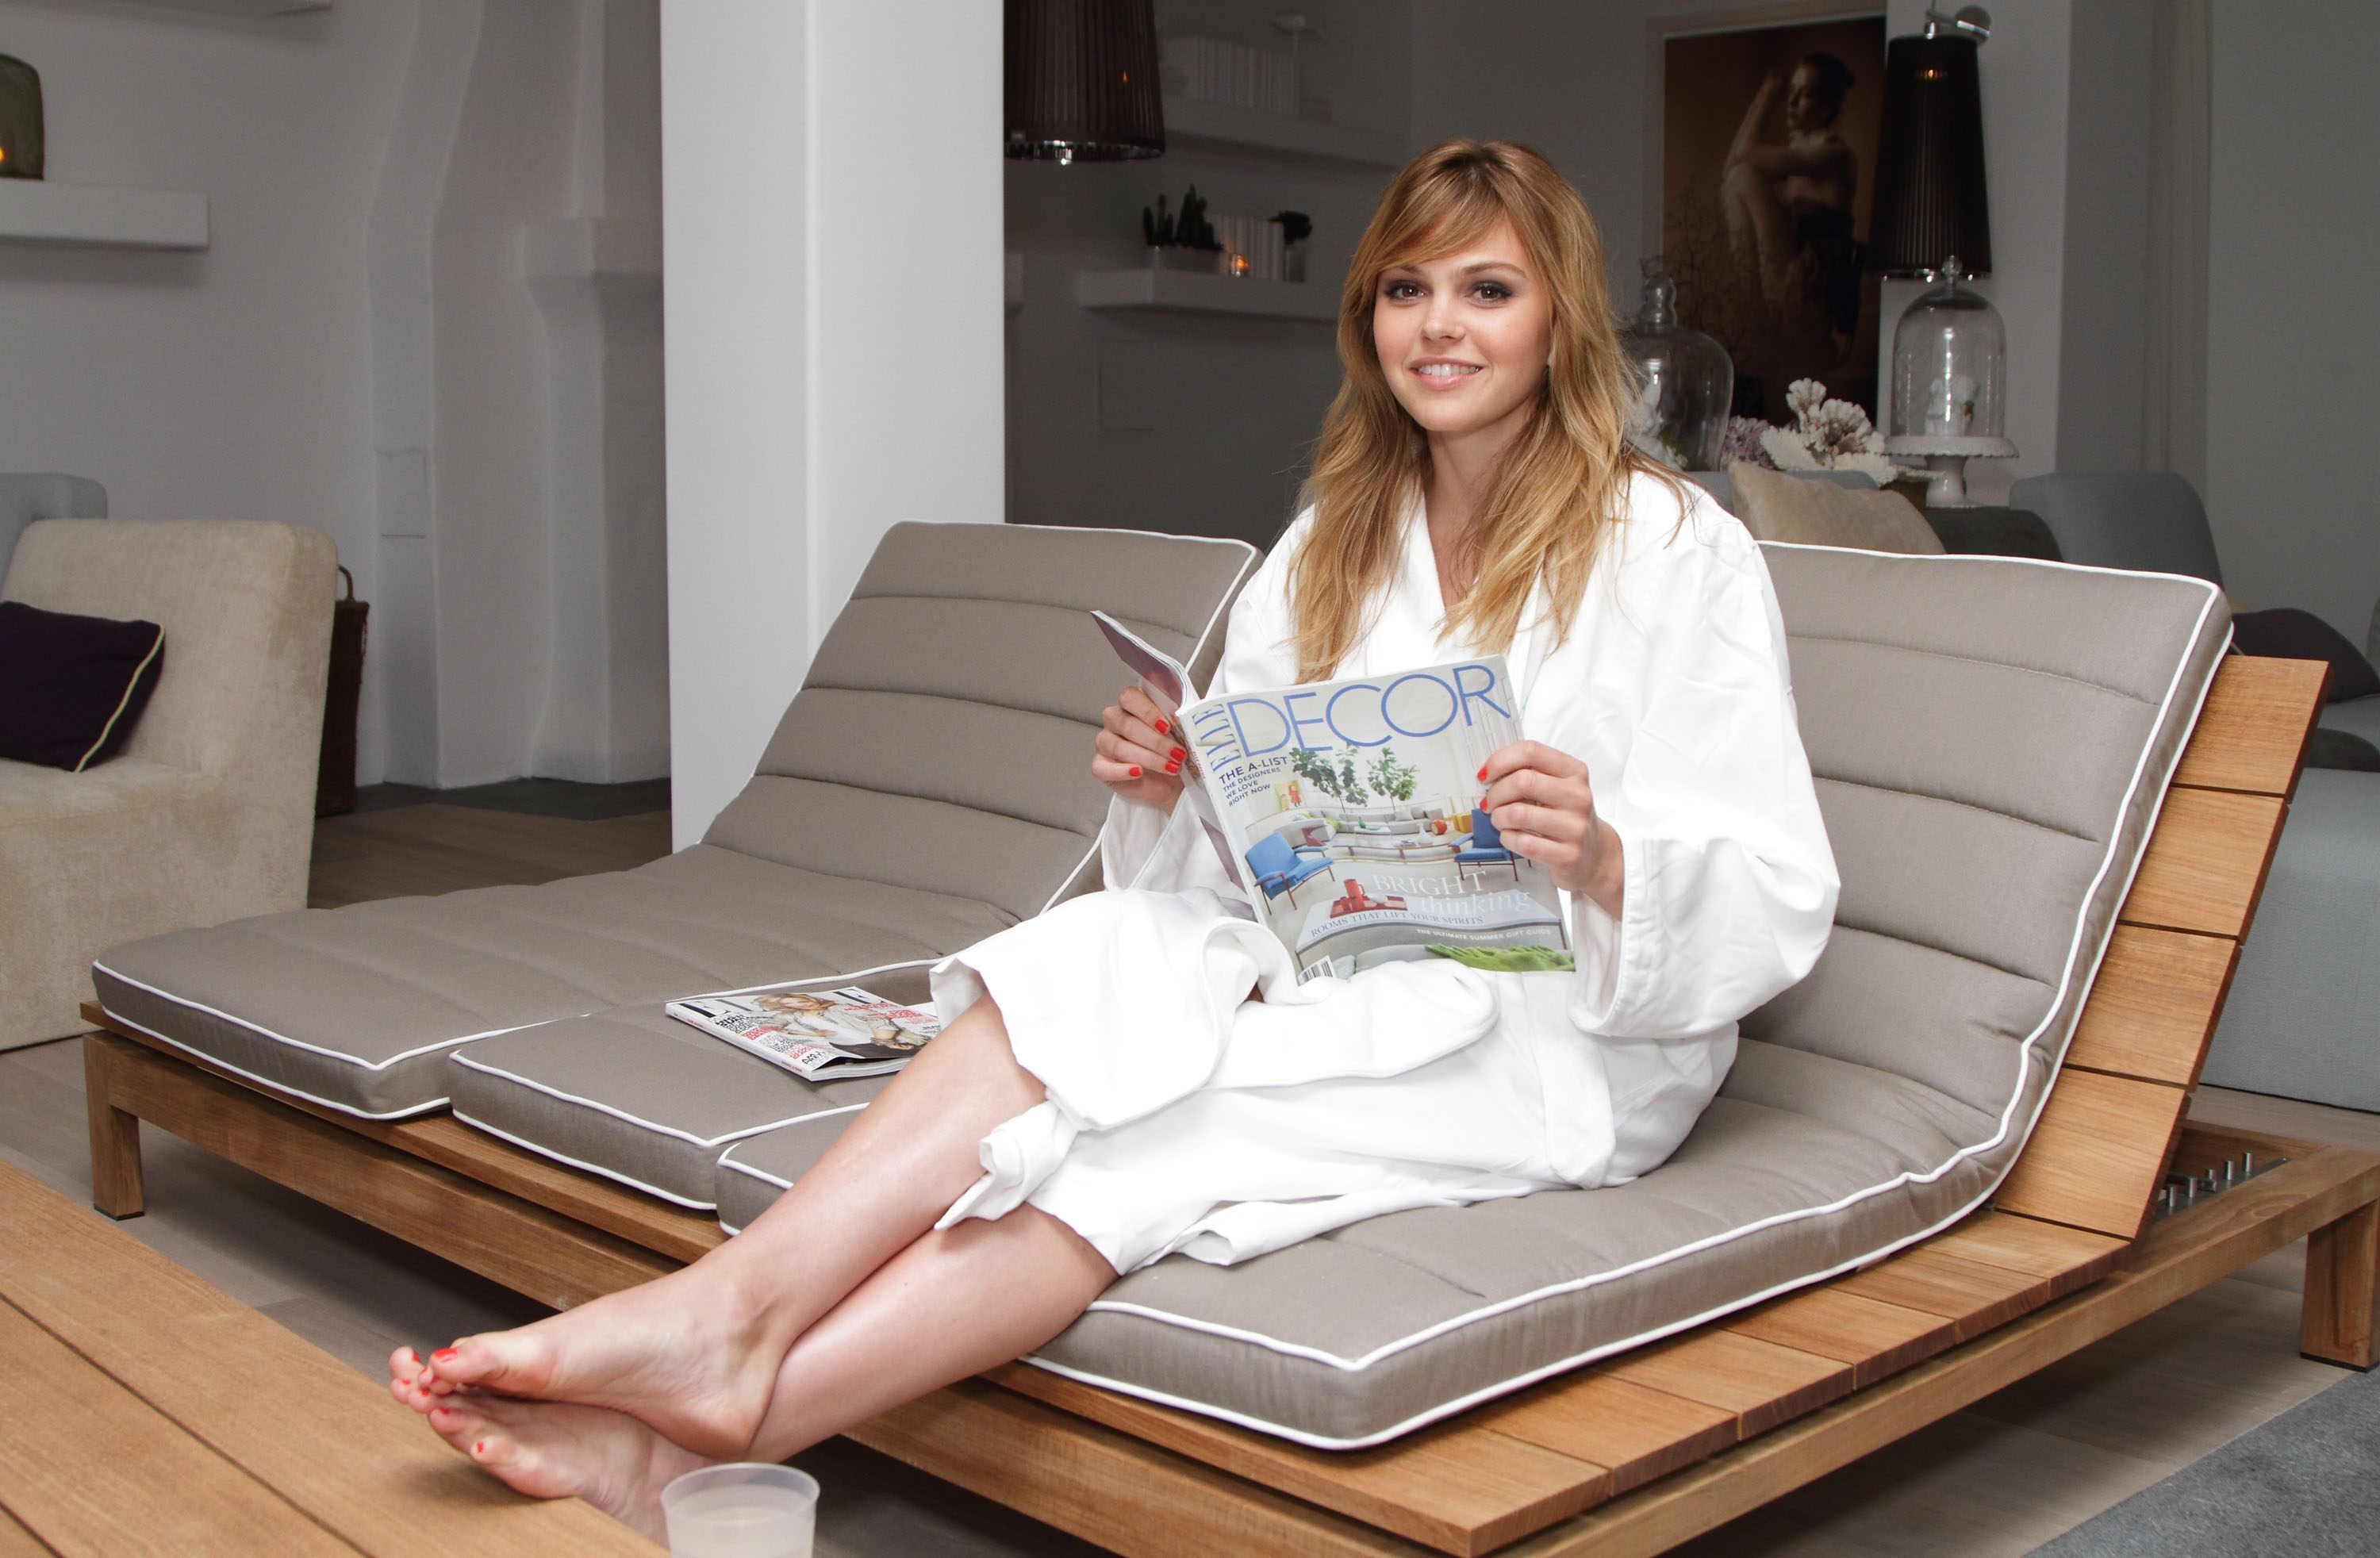 Feet Aimee Teegarden nudes (67 photo), Tits, Paparazzi, Twitter, underwear 2020